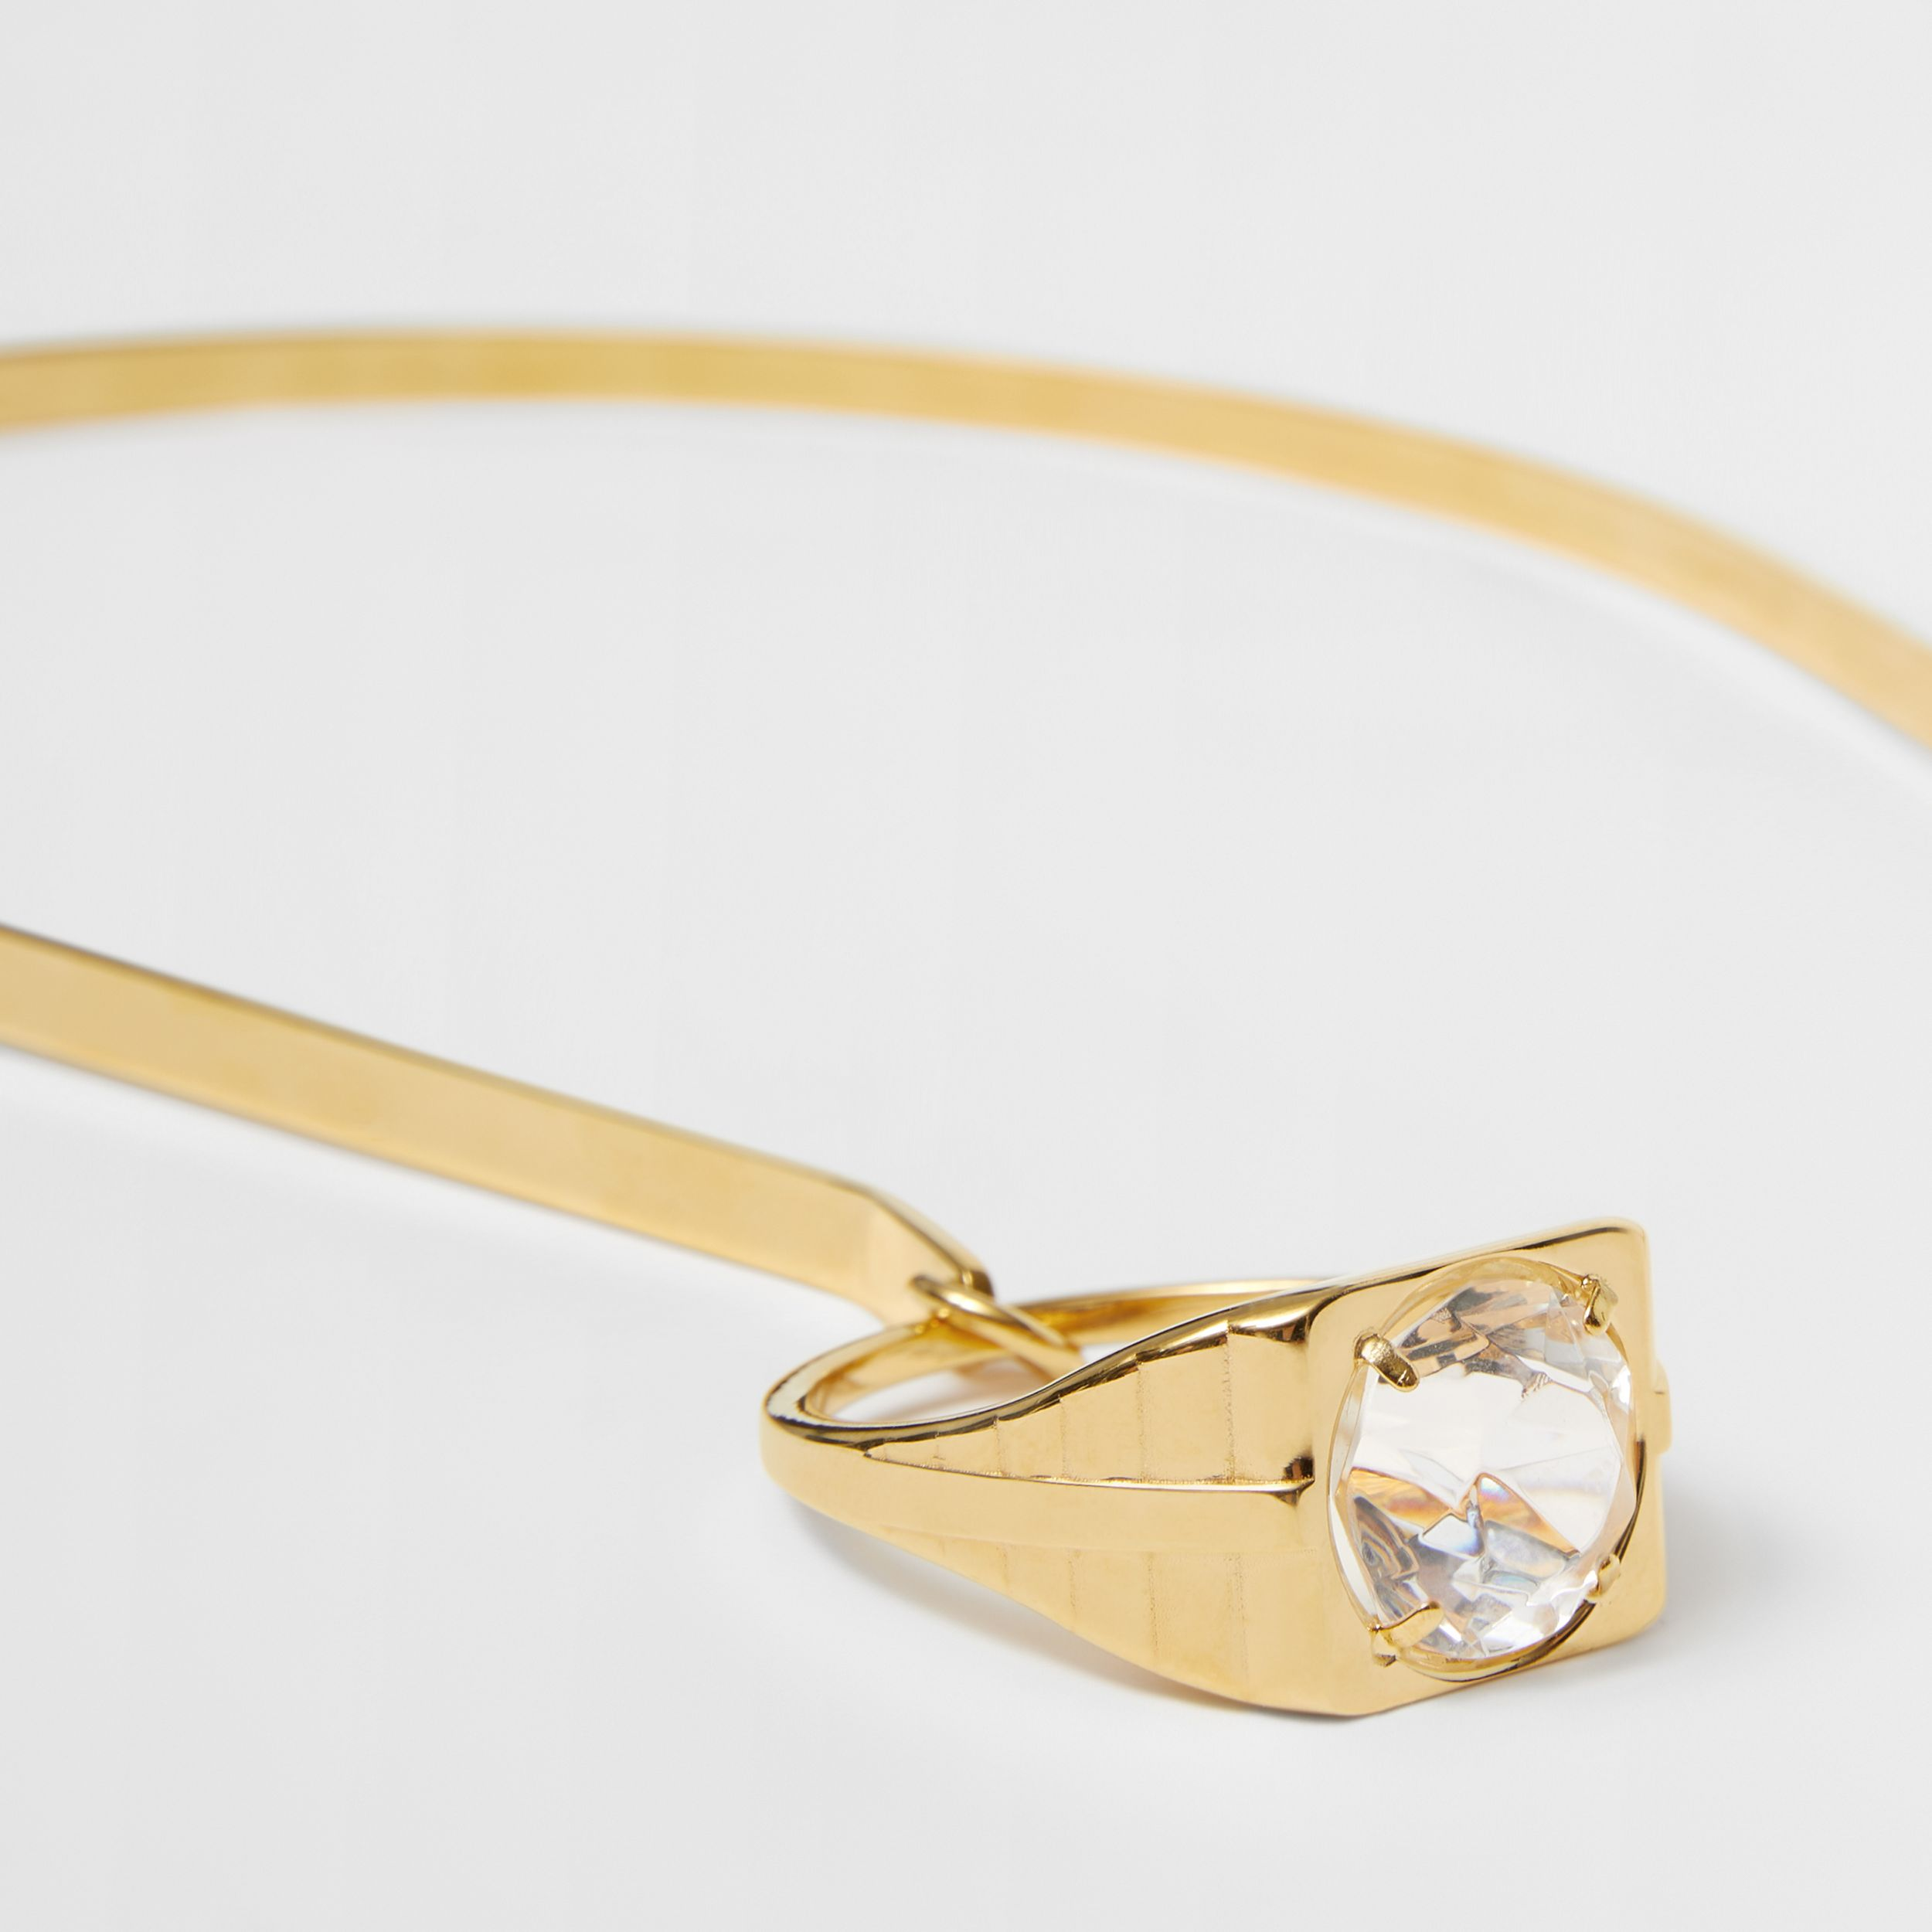 Ring Detail Gold-plated Hairband in Light Gold/crystal - Women | Burberry - 2